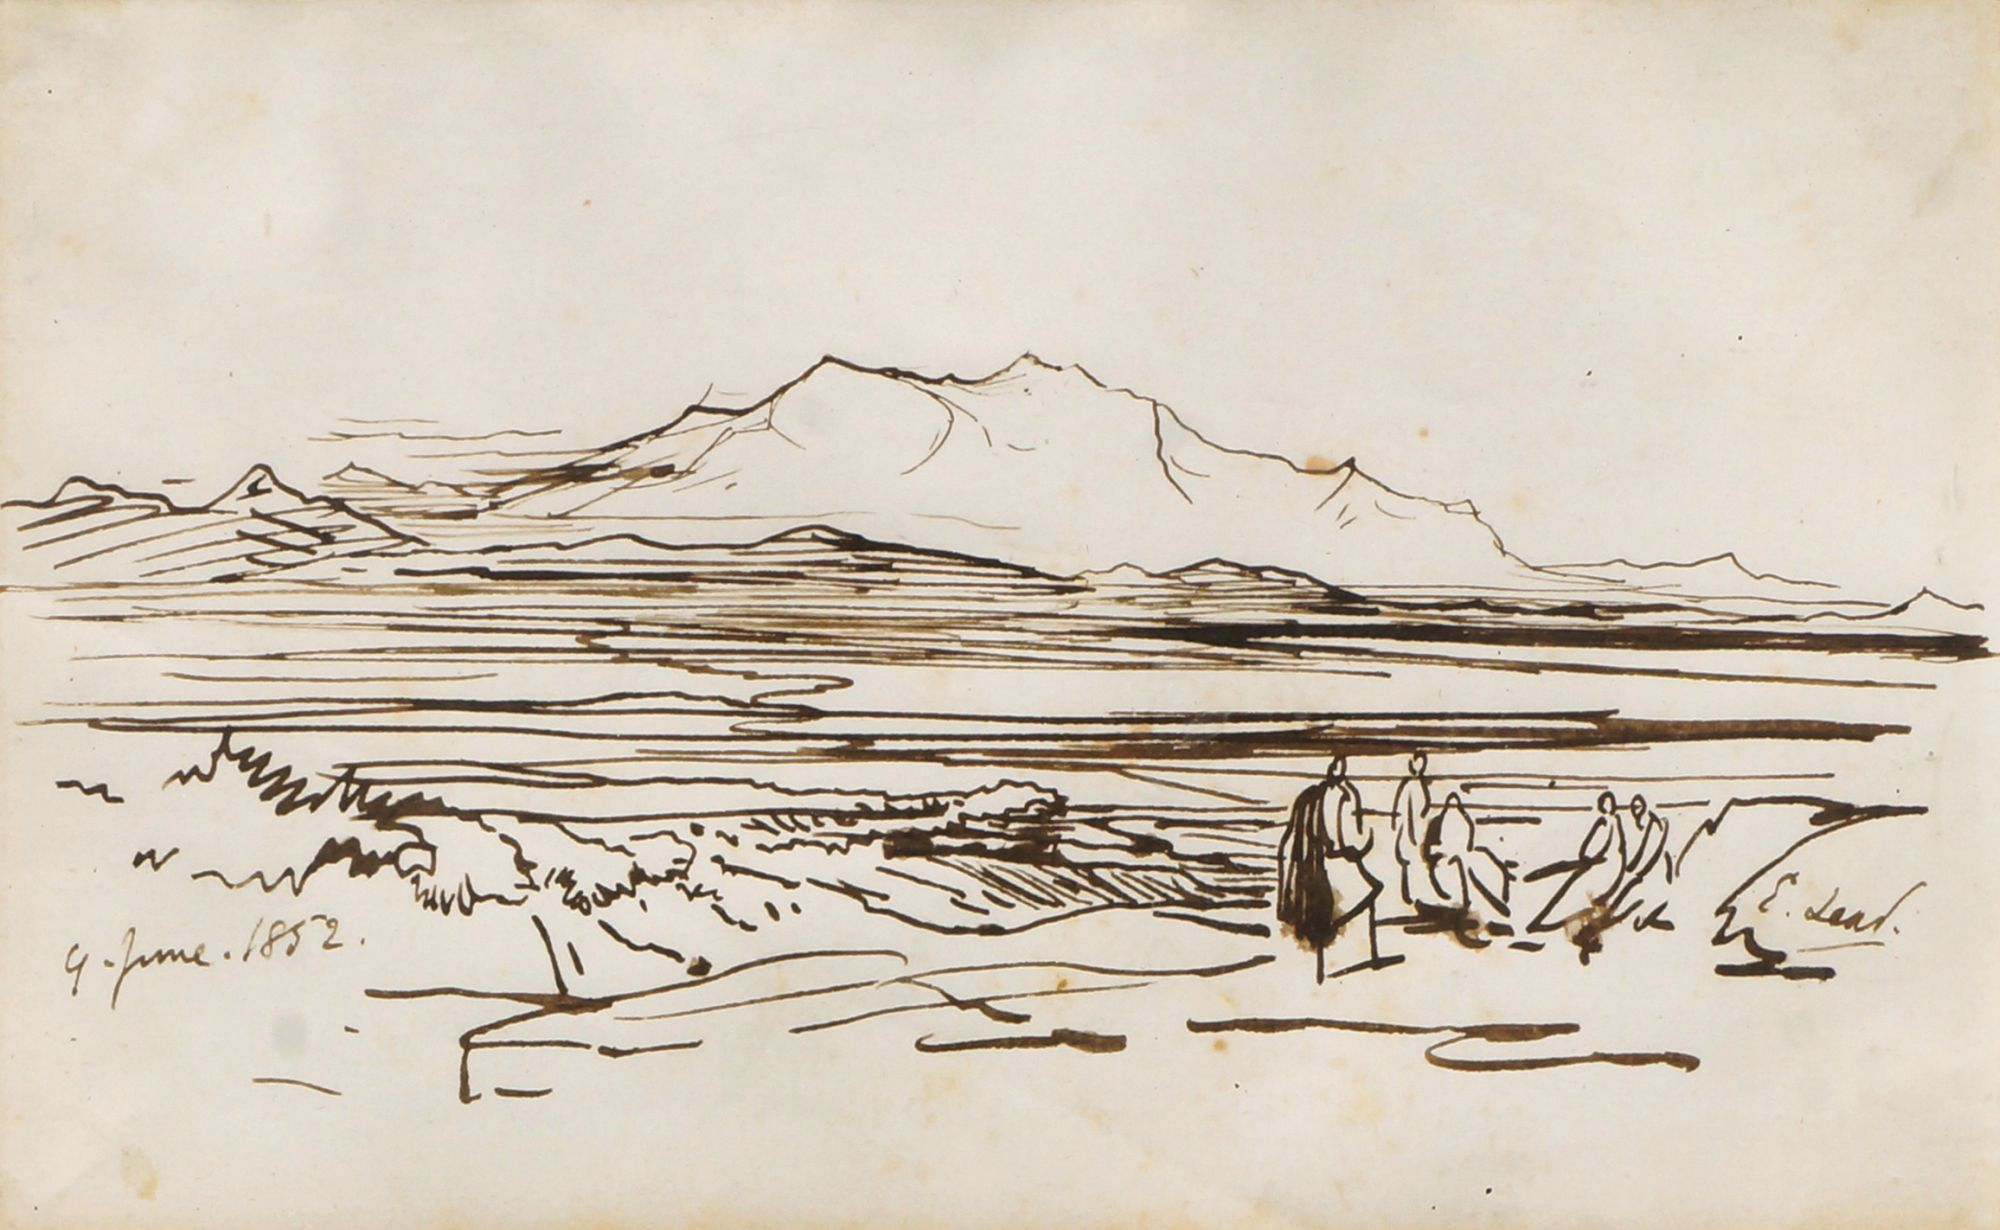 Edward Lear, British 1812-1888- Girgeh on the Nile & Figures in a mountain landscape; pen, brown ink - Image 2 of 3